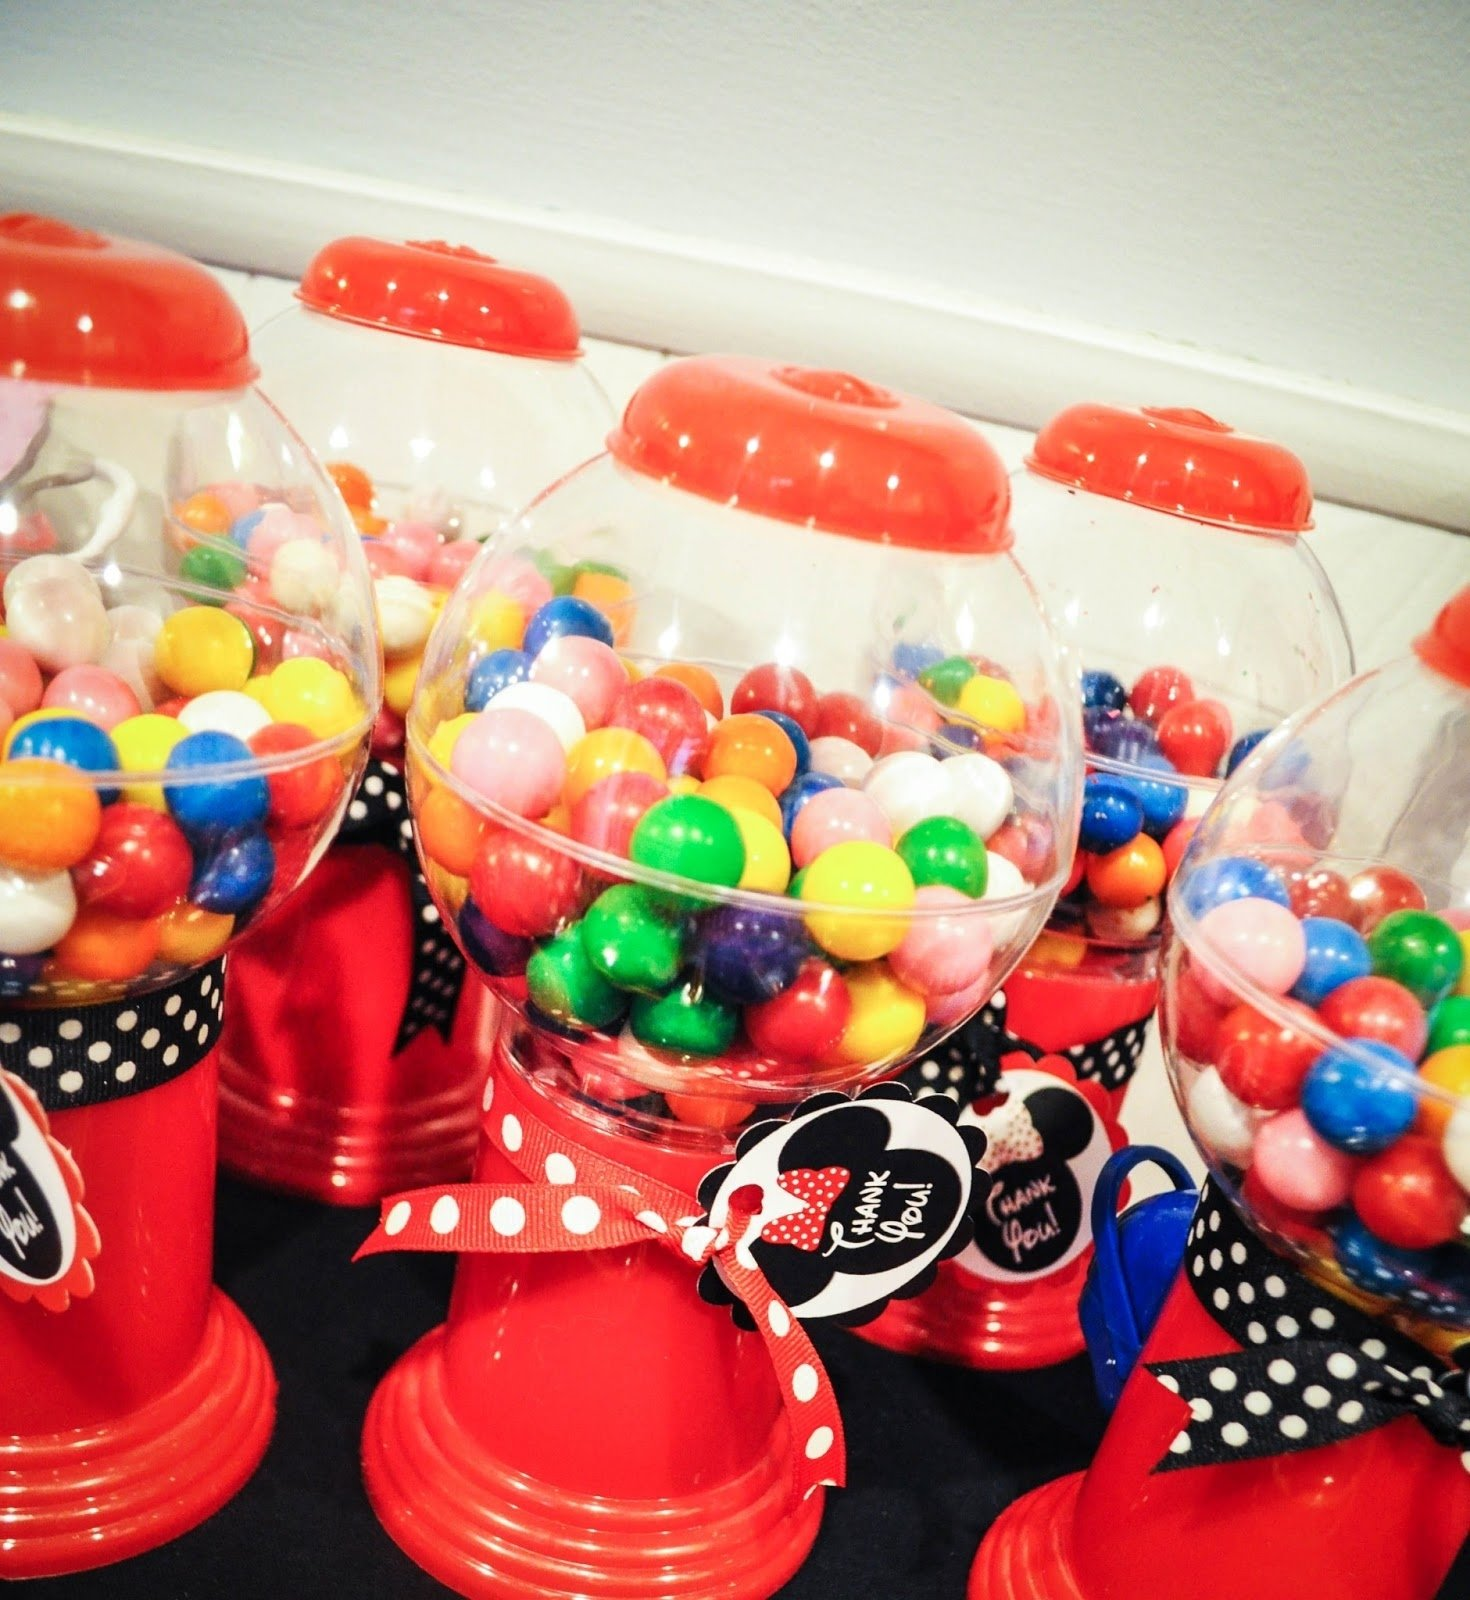 10 Attractive Mickey Mouse Party Favors Ideas modern minnie mouse party decor favors pretty real 4 2020